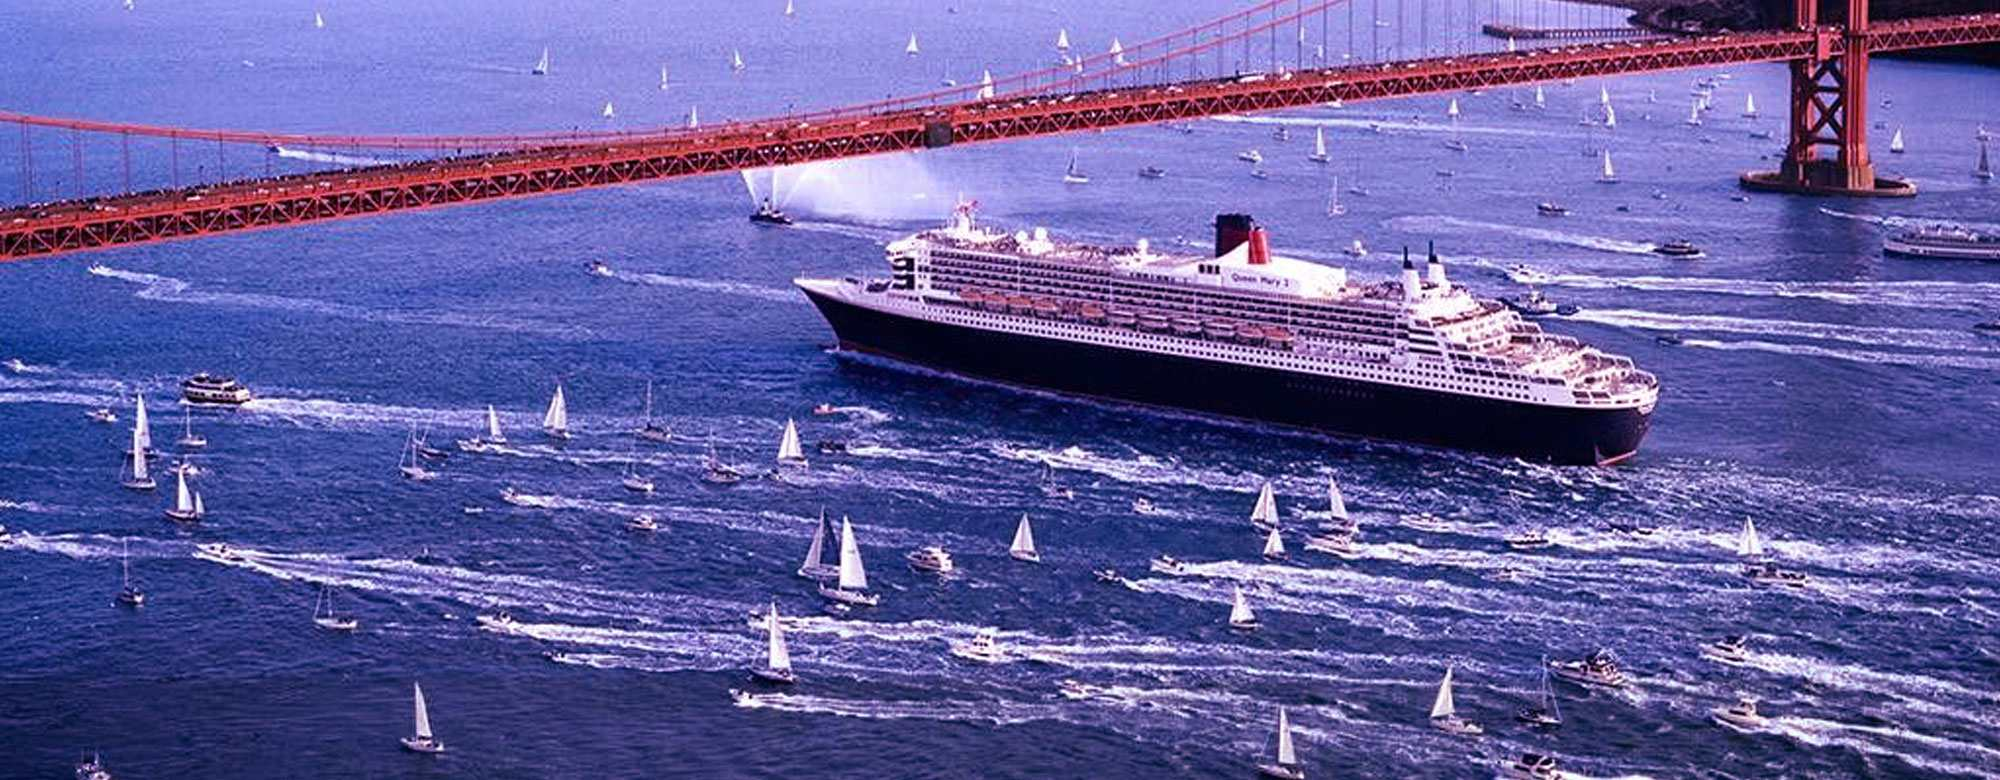 Queen Mary San francisco